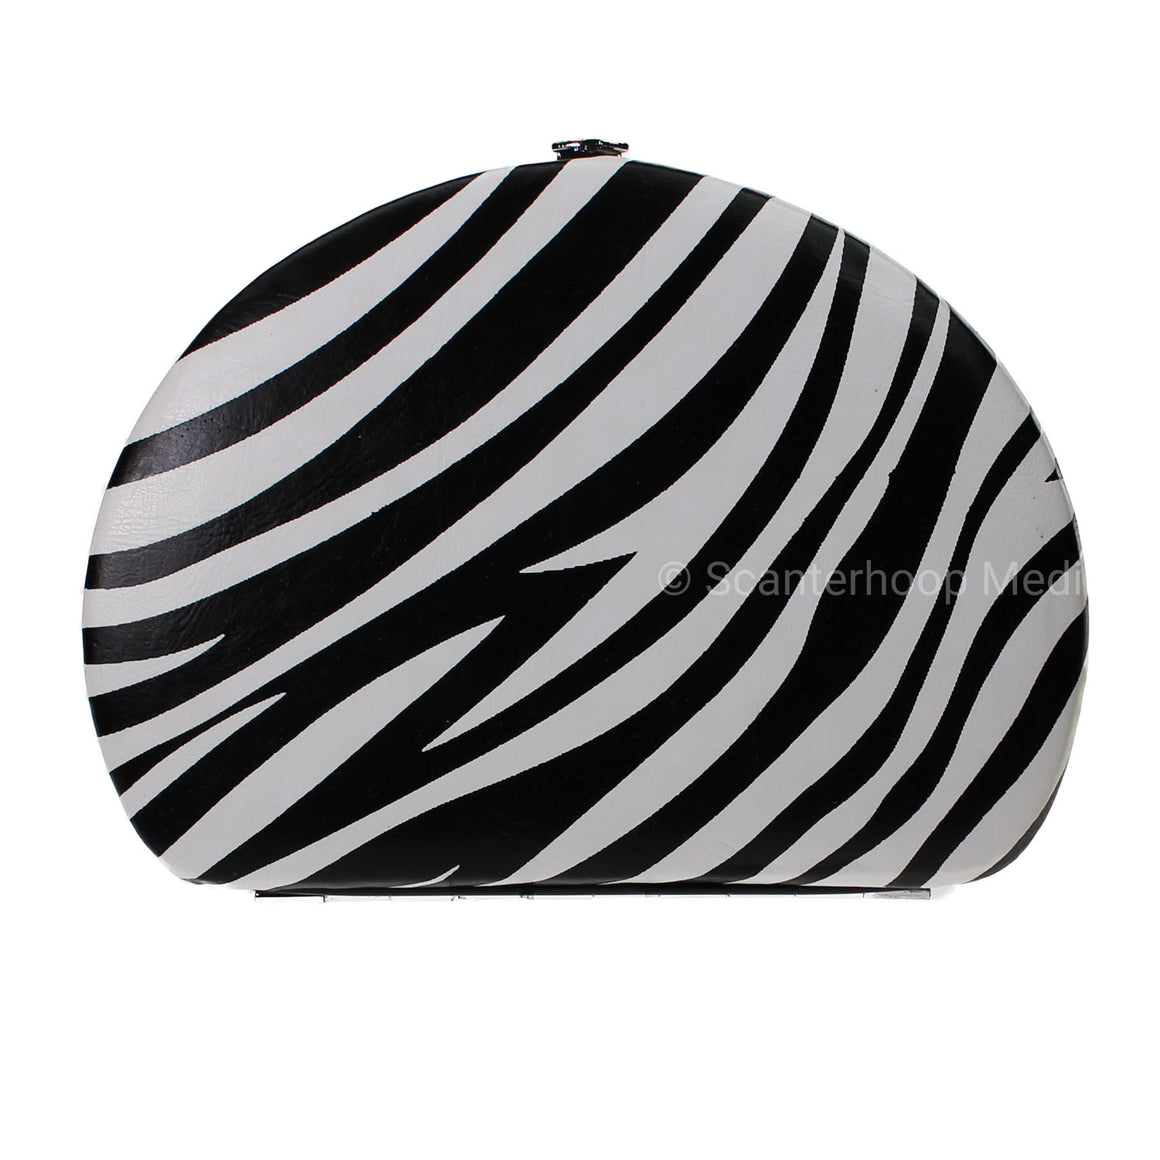 1204 Zebra print Manicure Set-2-Edit-2.jpg